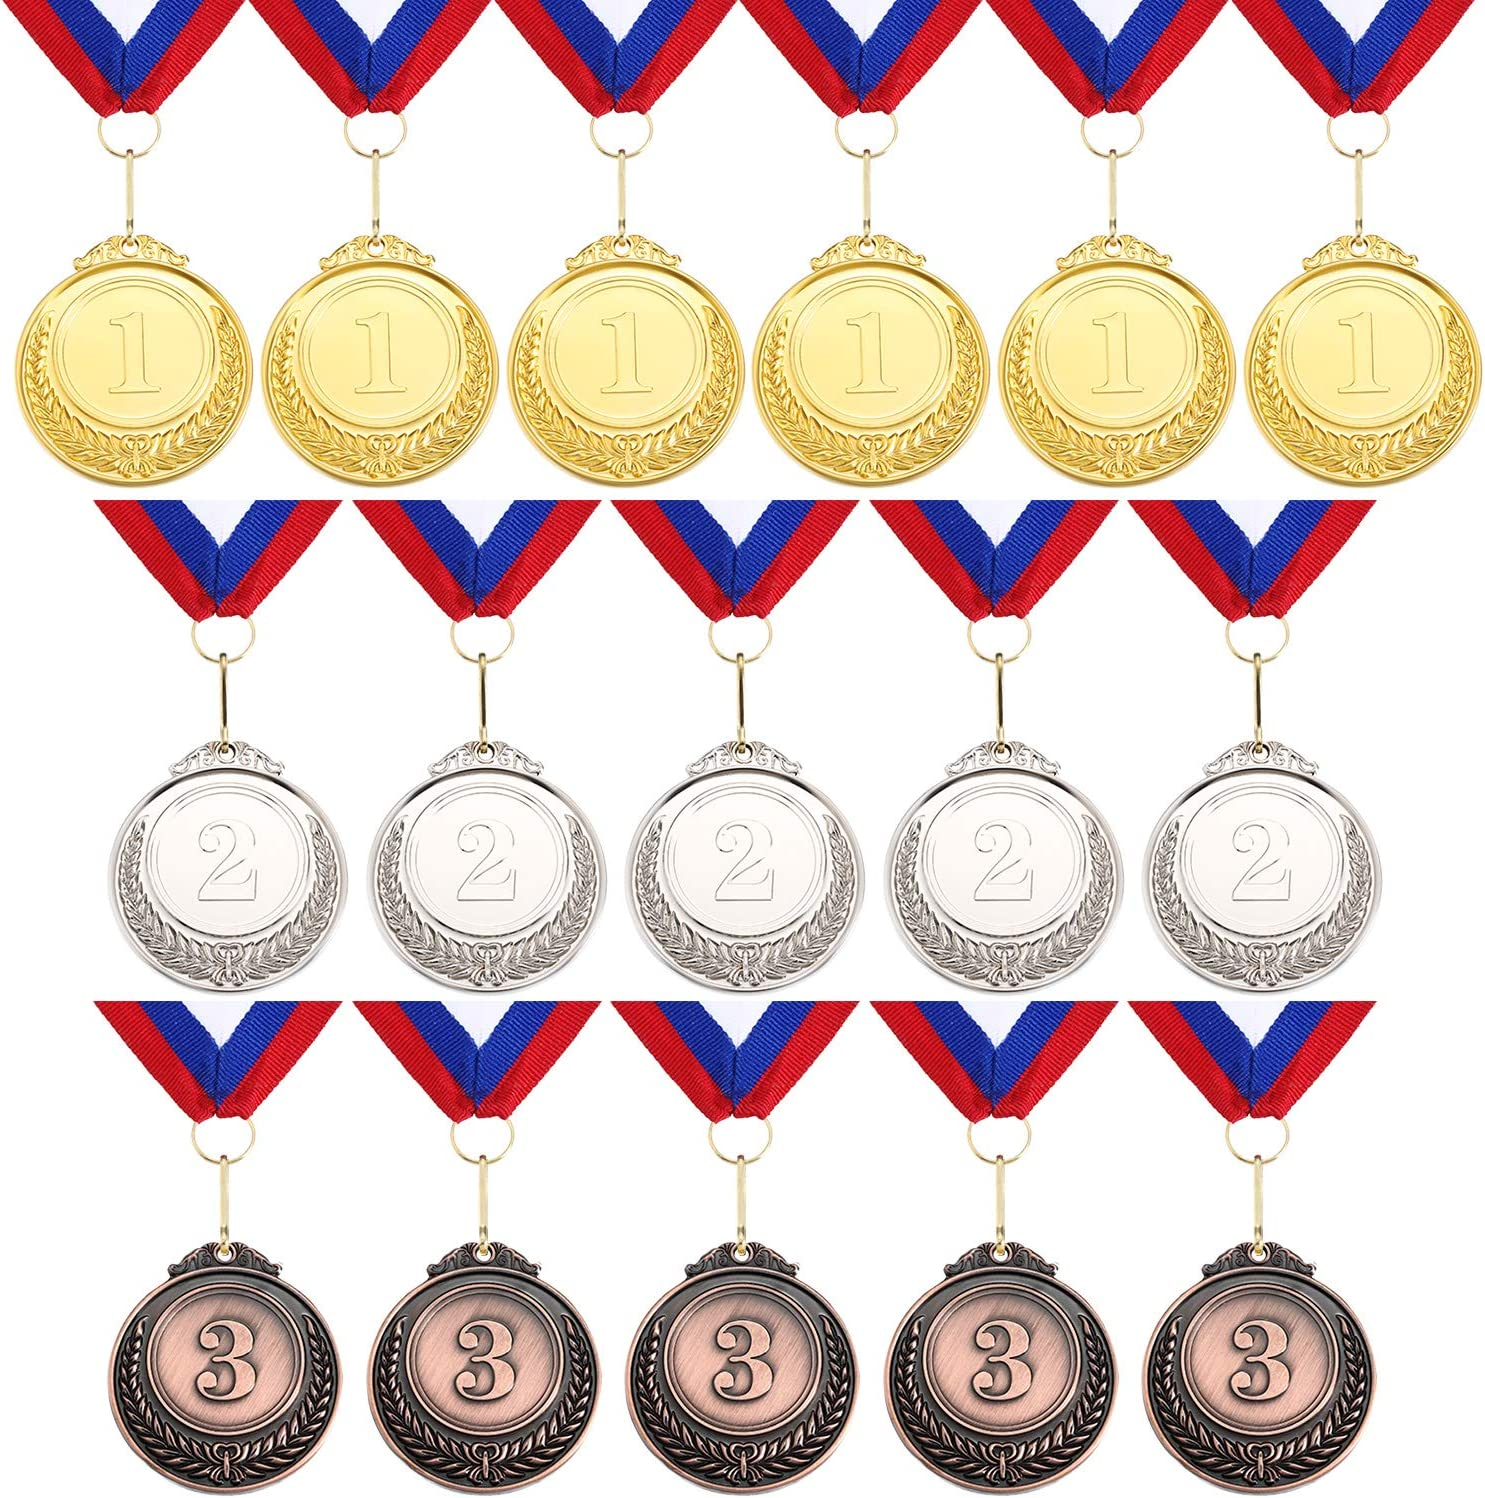 Blulu 12 Pieces Gold Sliver Bronze Metal Winner Medals Gold Sliver Bronze Olympic Style Awards Medals with Ribbon